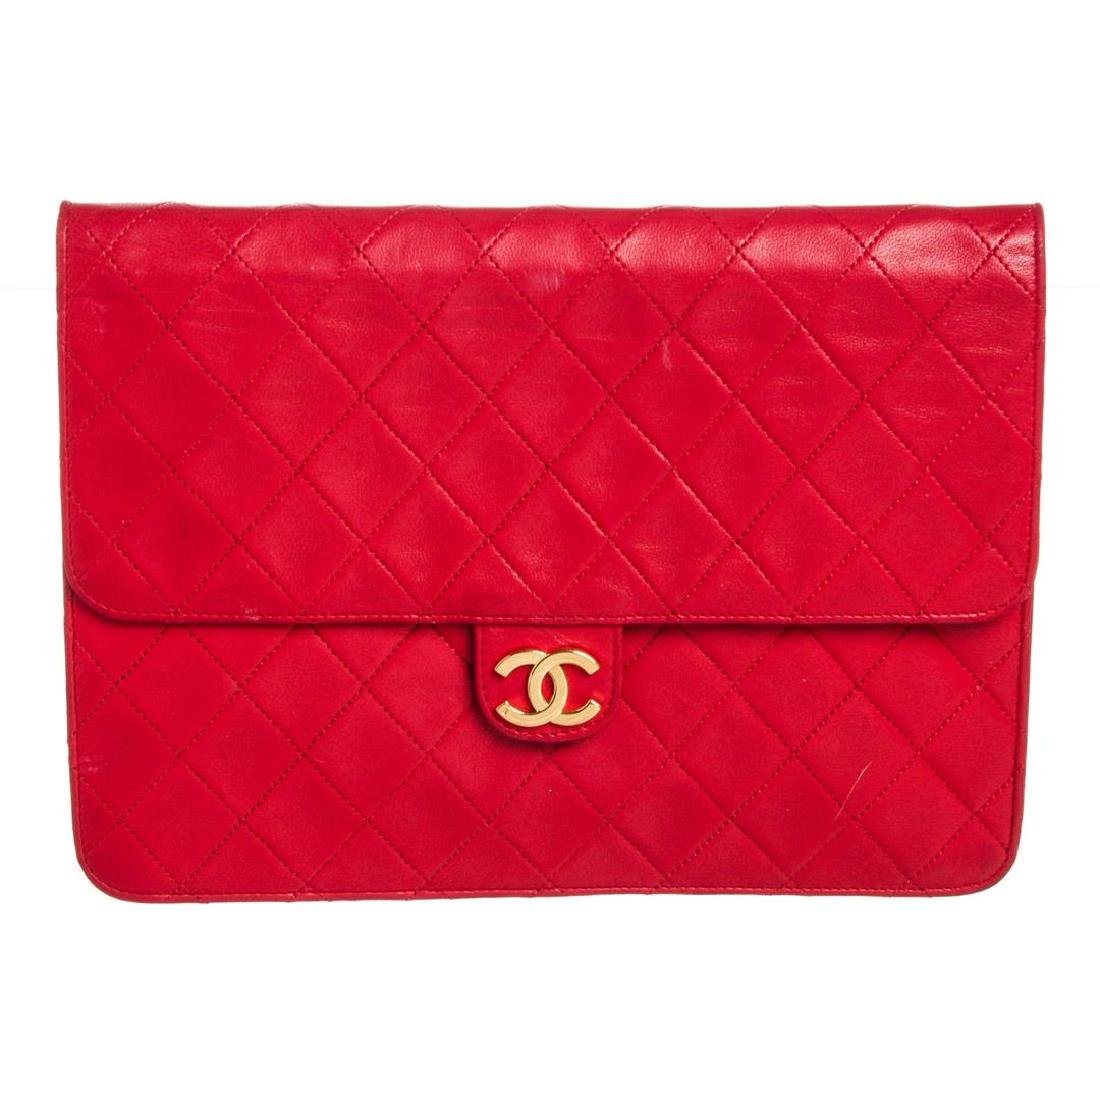 Chanel Red Quilted Lambskin Leather Flap Shoulder